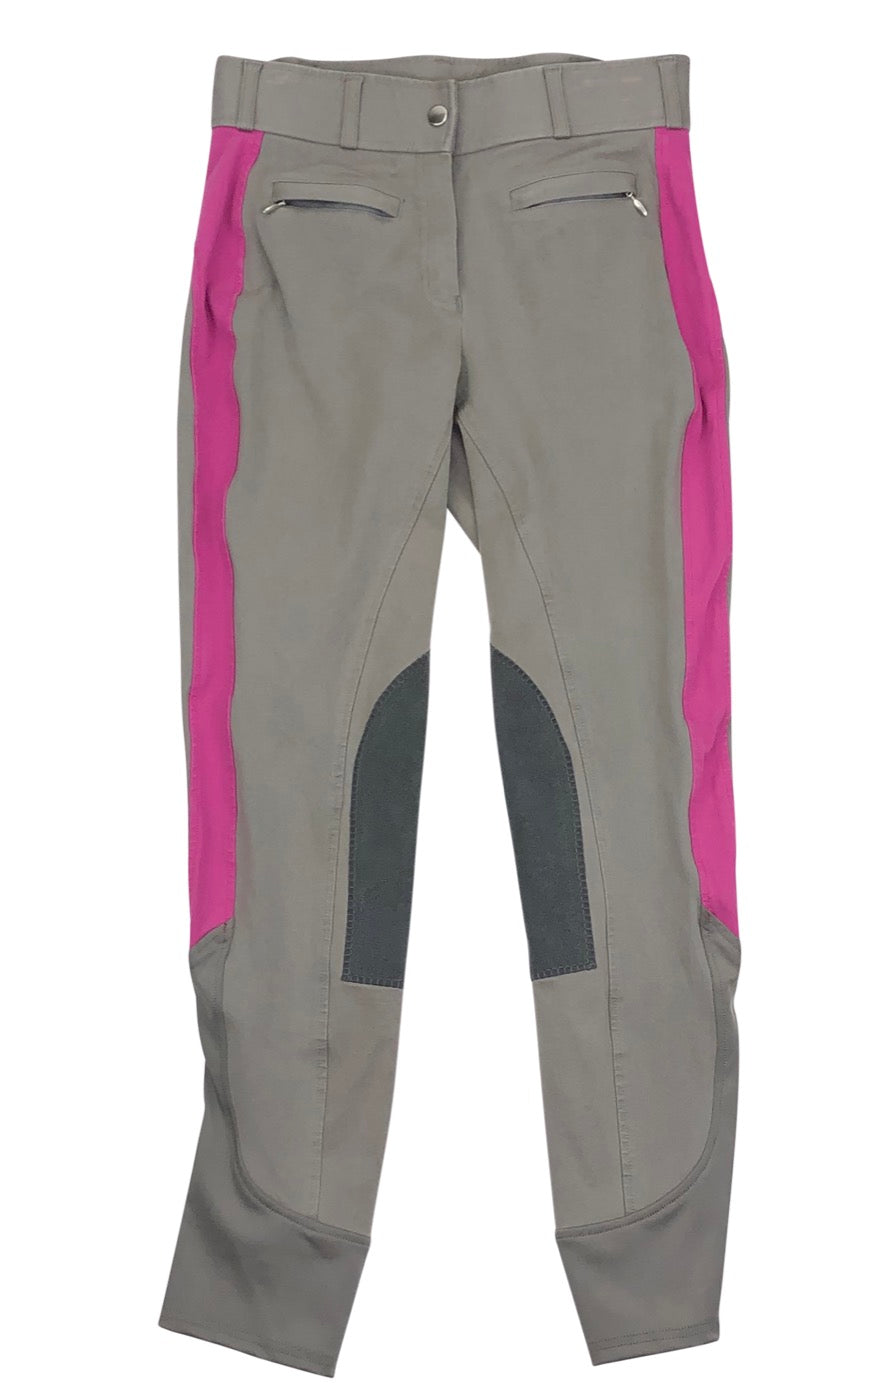 Dover Saddlery Knee Patch Breeches in Light Grey and pink